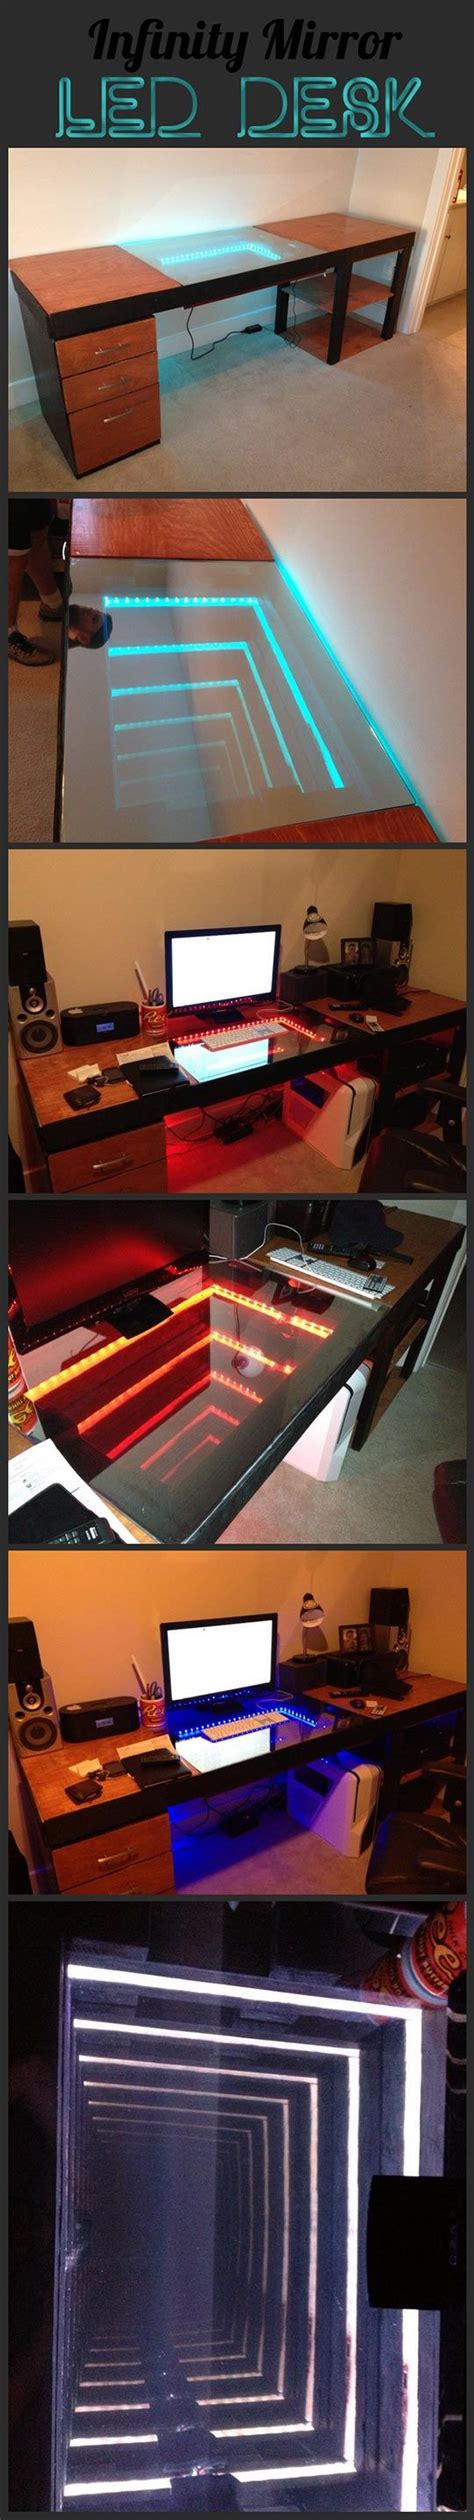 infinity mirror computer desk 1000 images about nerd on pinterest rose tyler time